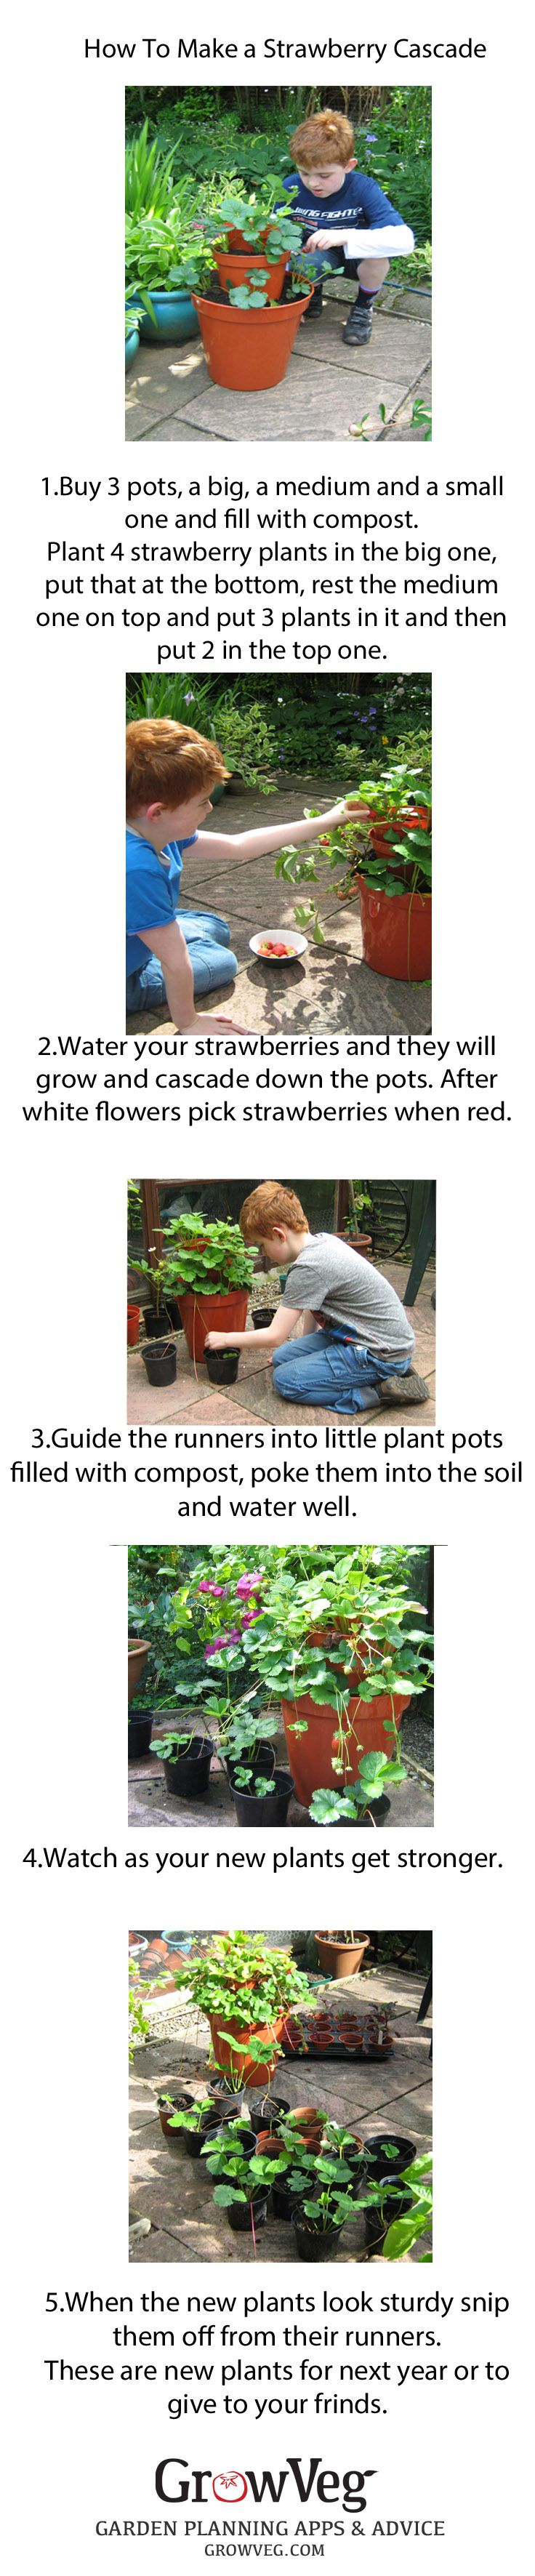 How to make a Strawberry Cascade using 3 different size pots and then after having picked the strawberries how to use the strawberry runners to create new plants for next year or to swap or give to friends.